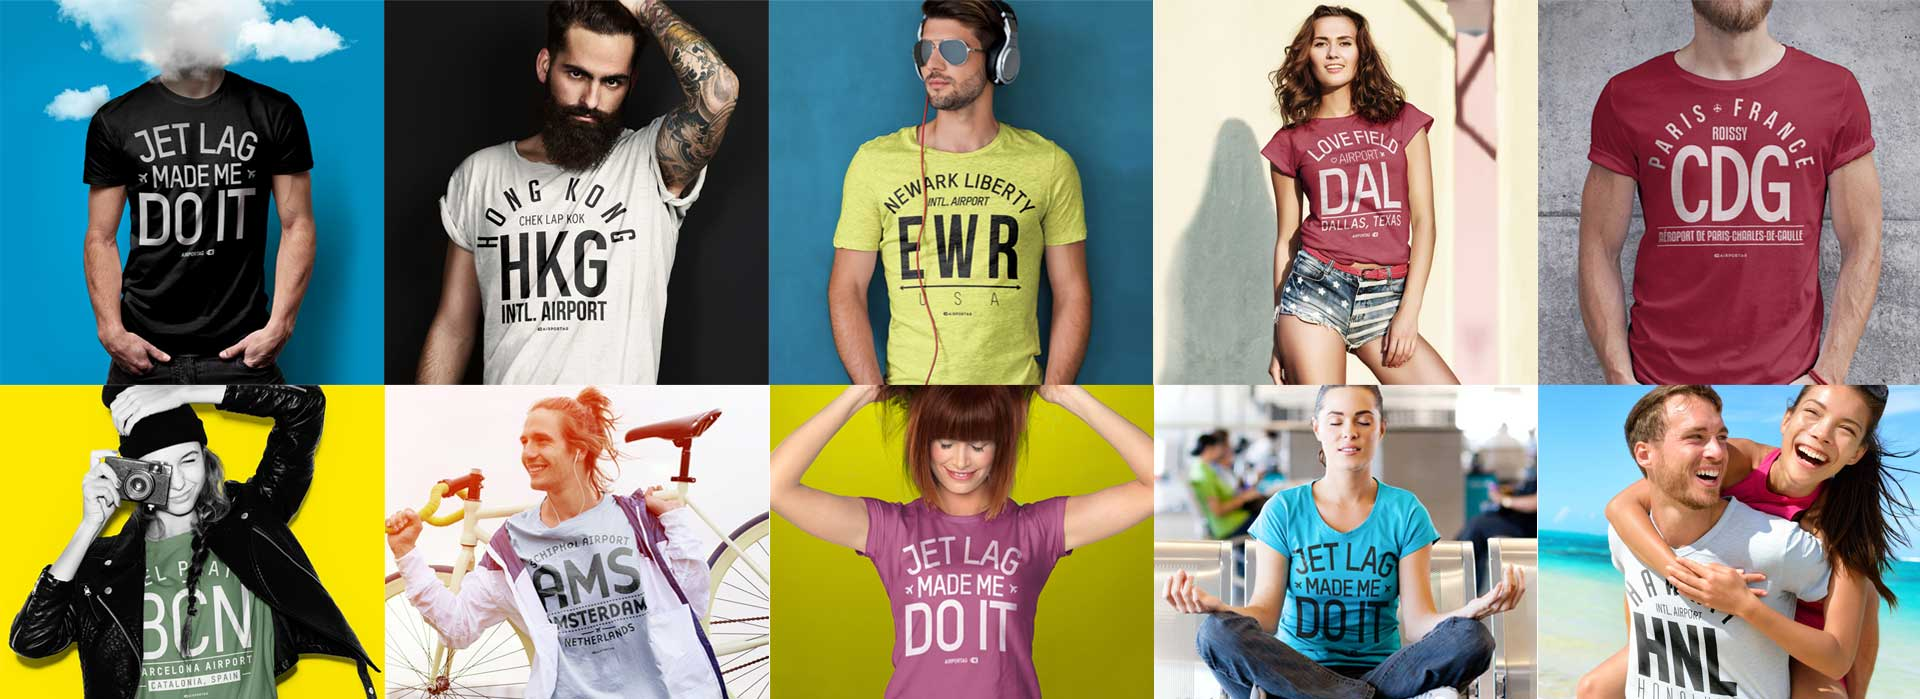 Airport code t-shirt collection